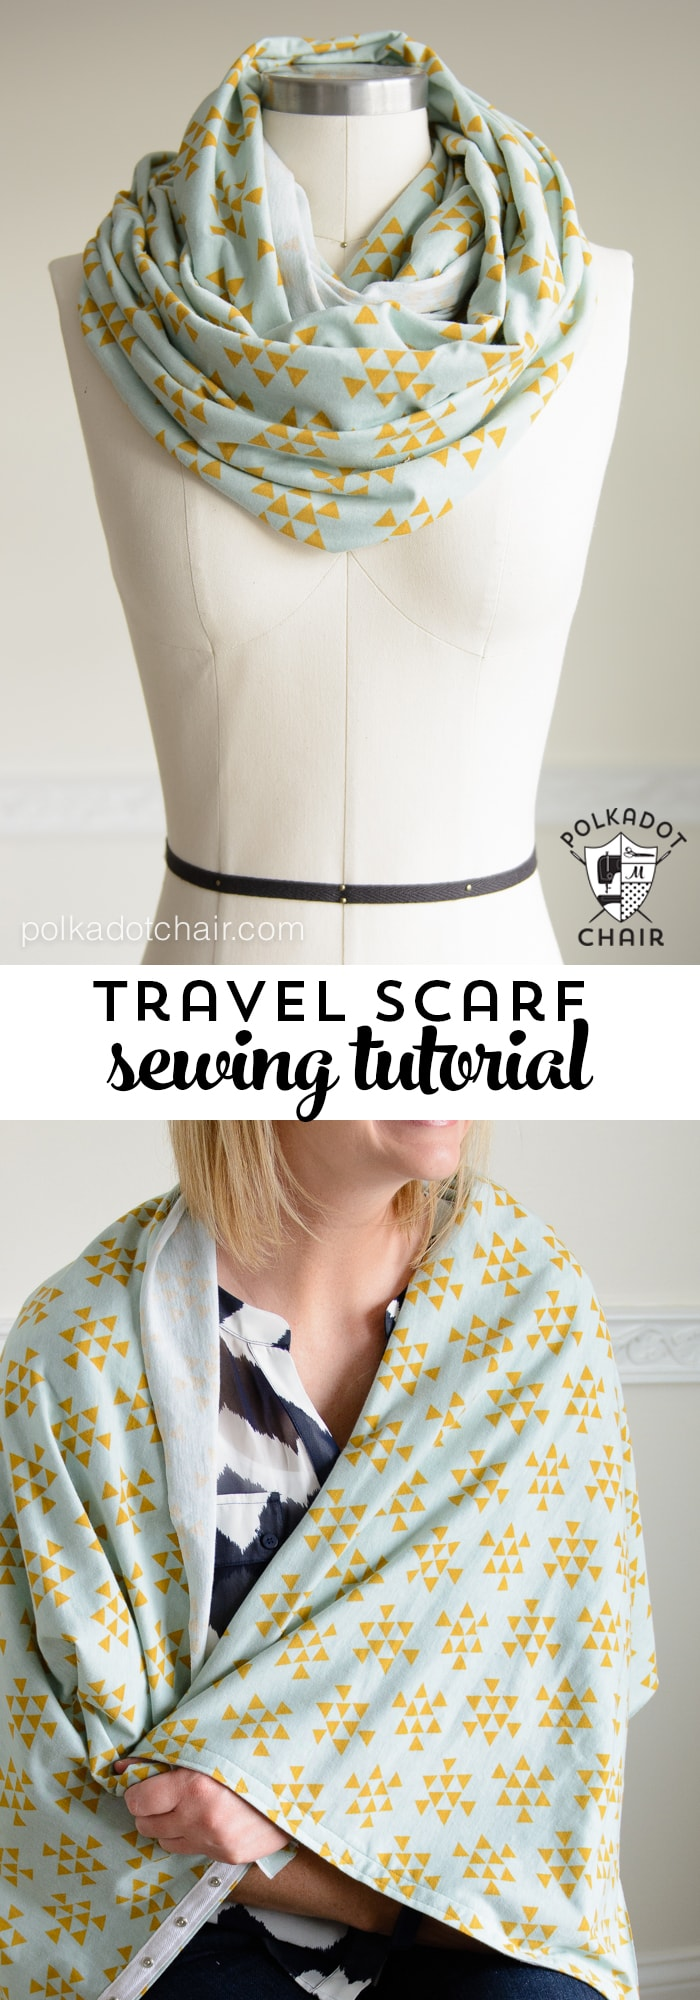 25+ Scarf Sewing Tutorials & Patterns | Polka Dot Chair 25+ Scarf Sewing Tutorials Sometimes we